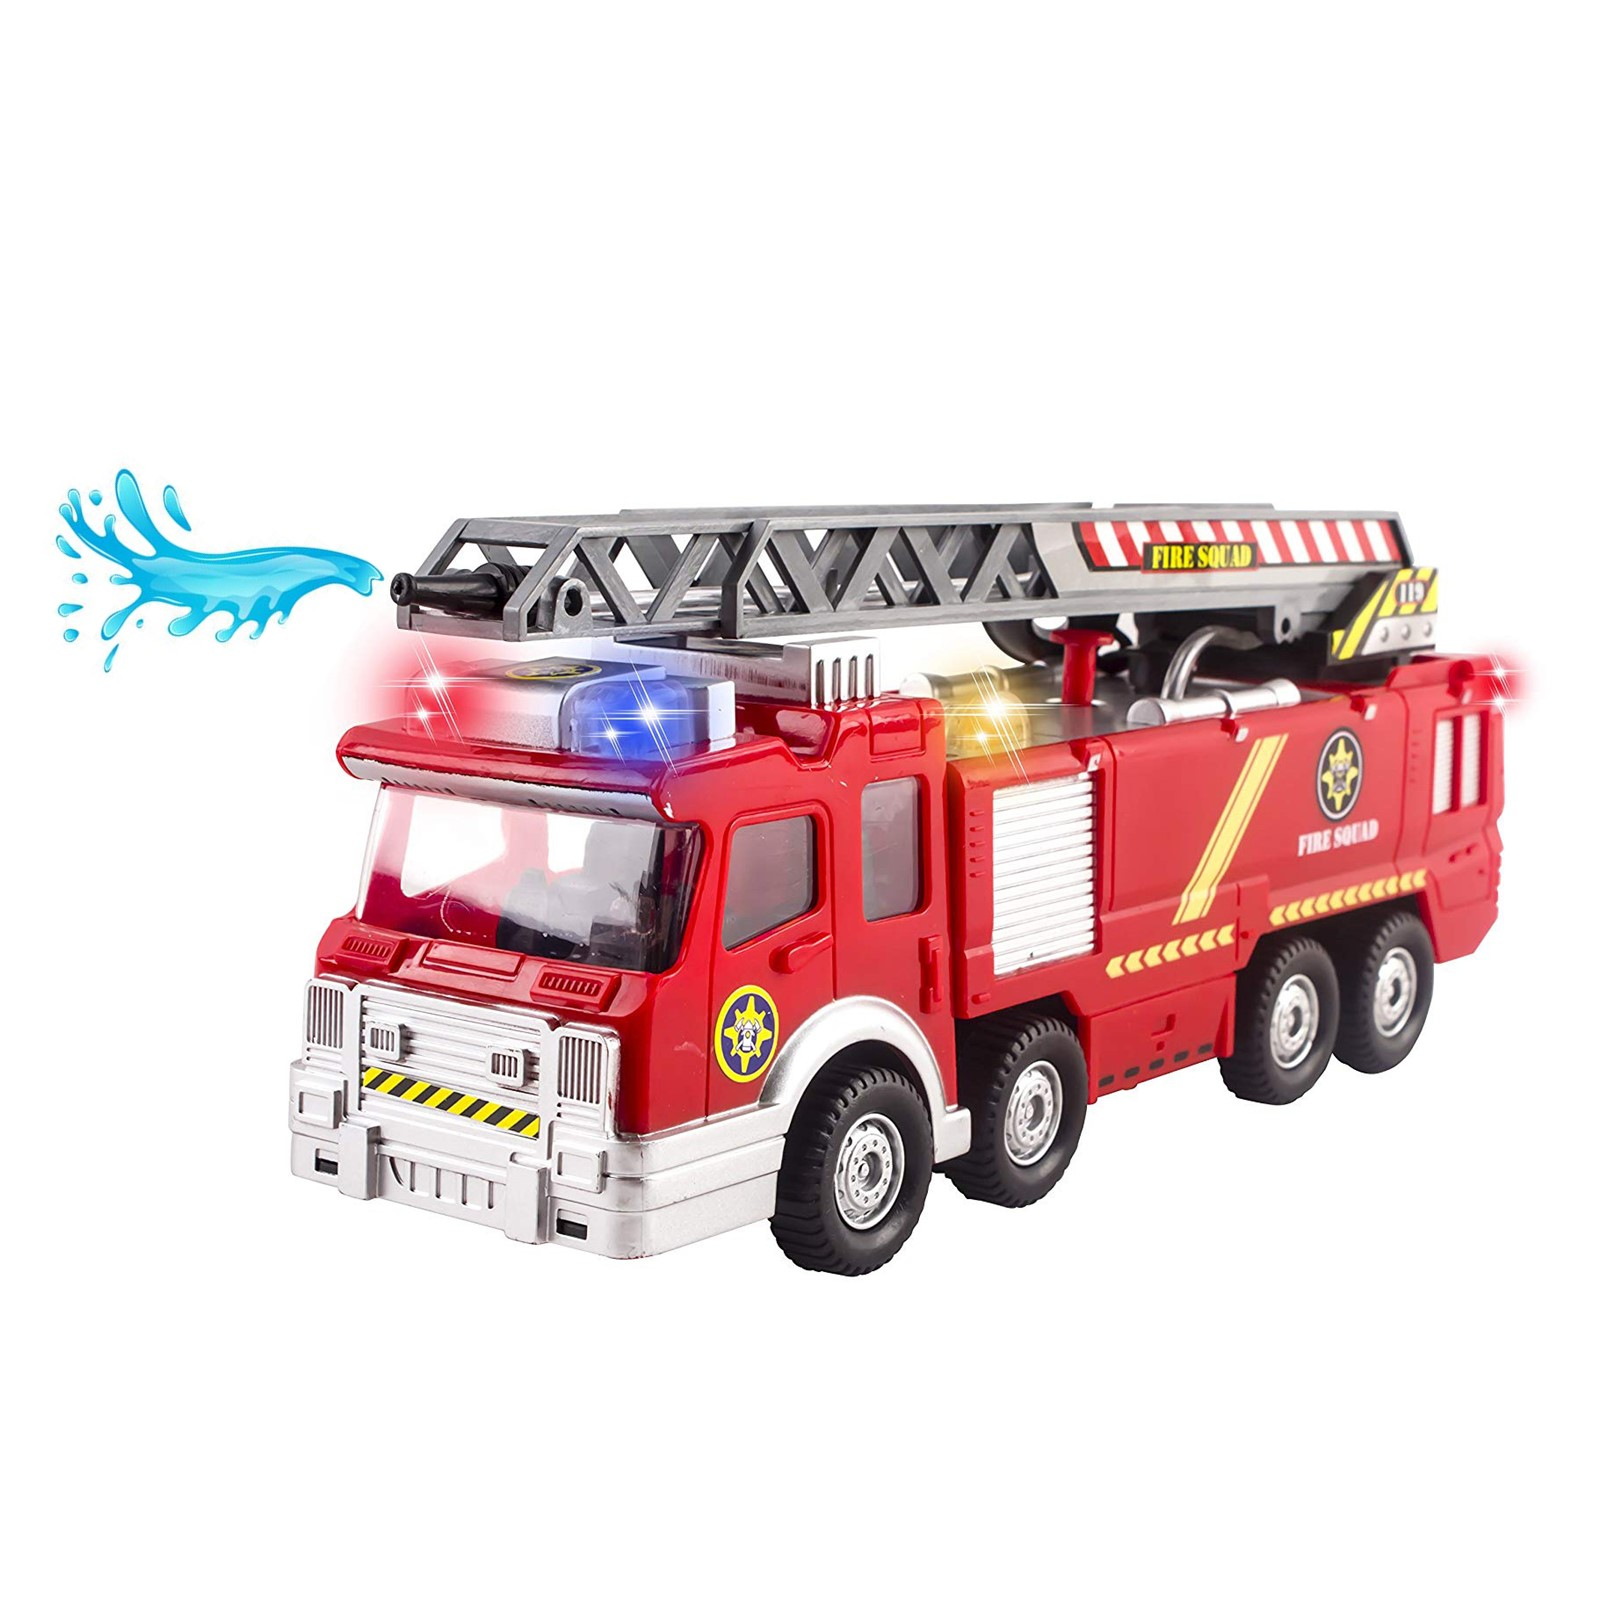 Fire Truck Toy Rescue With Shooting Water Flashing Lights and Siren Sounds Extending Ladder And Water Pump Hose That Shoots Water Perfect Bump And Go Action Firetruck for Boys Girls